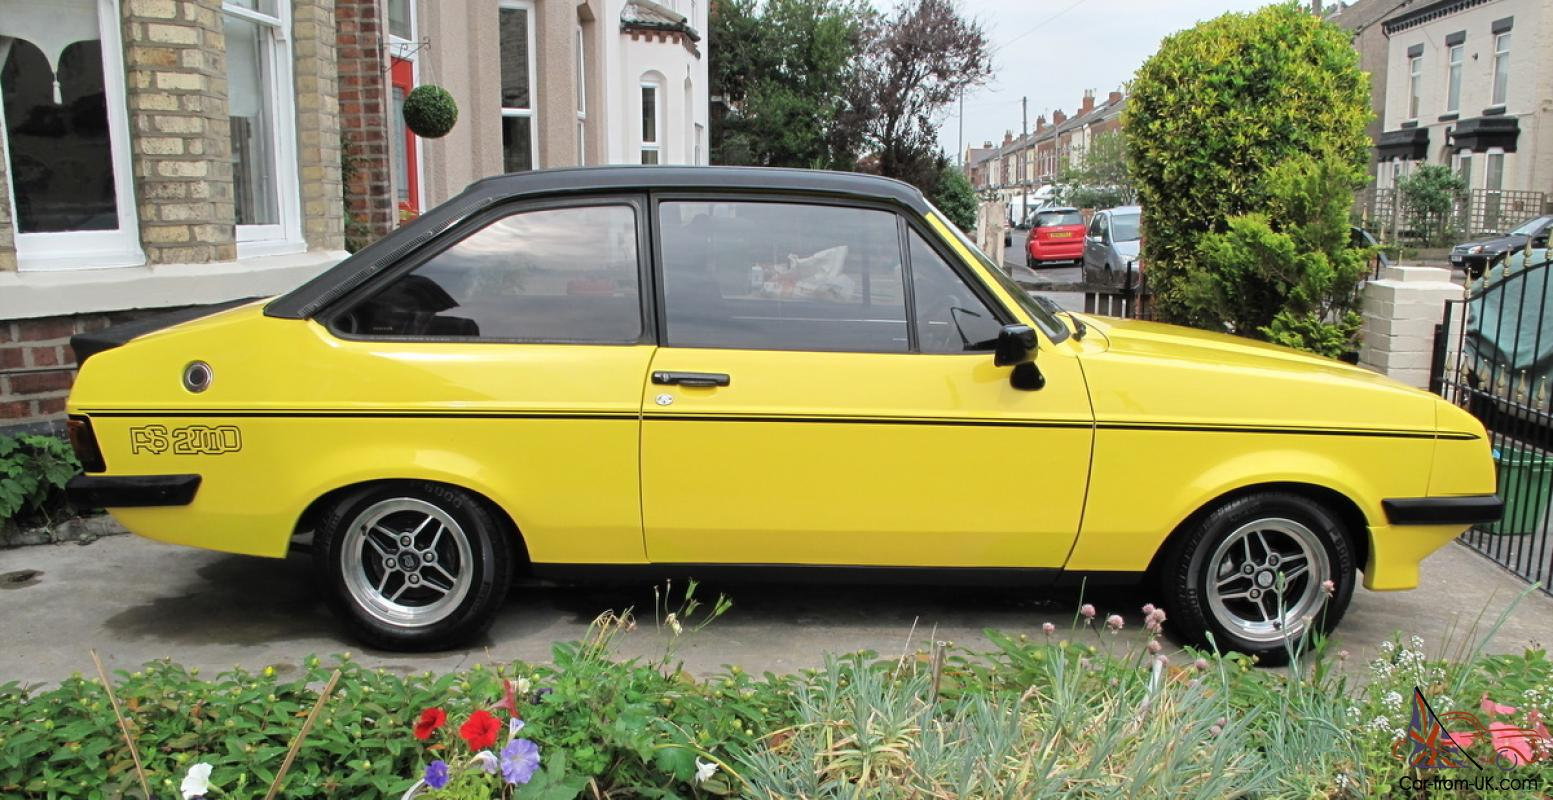 ford escort rs 2000 custom stunning vehicle in signal yellow. Black Bedroom Furniture Sets. Home Design Ideas